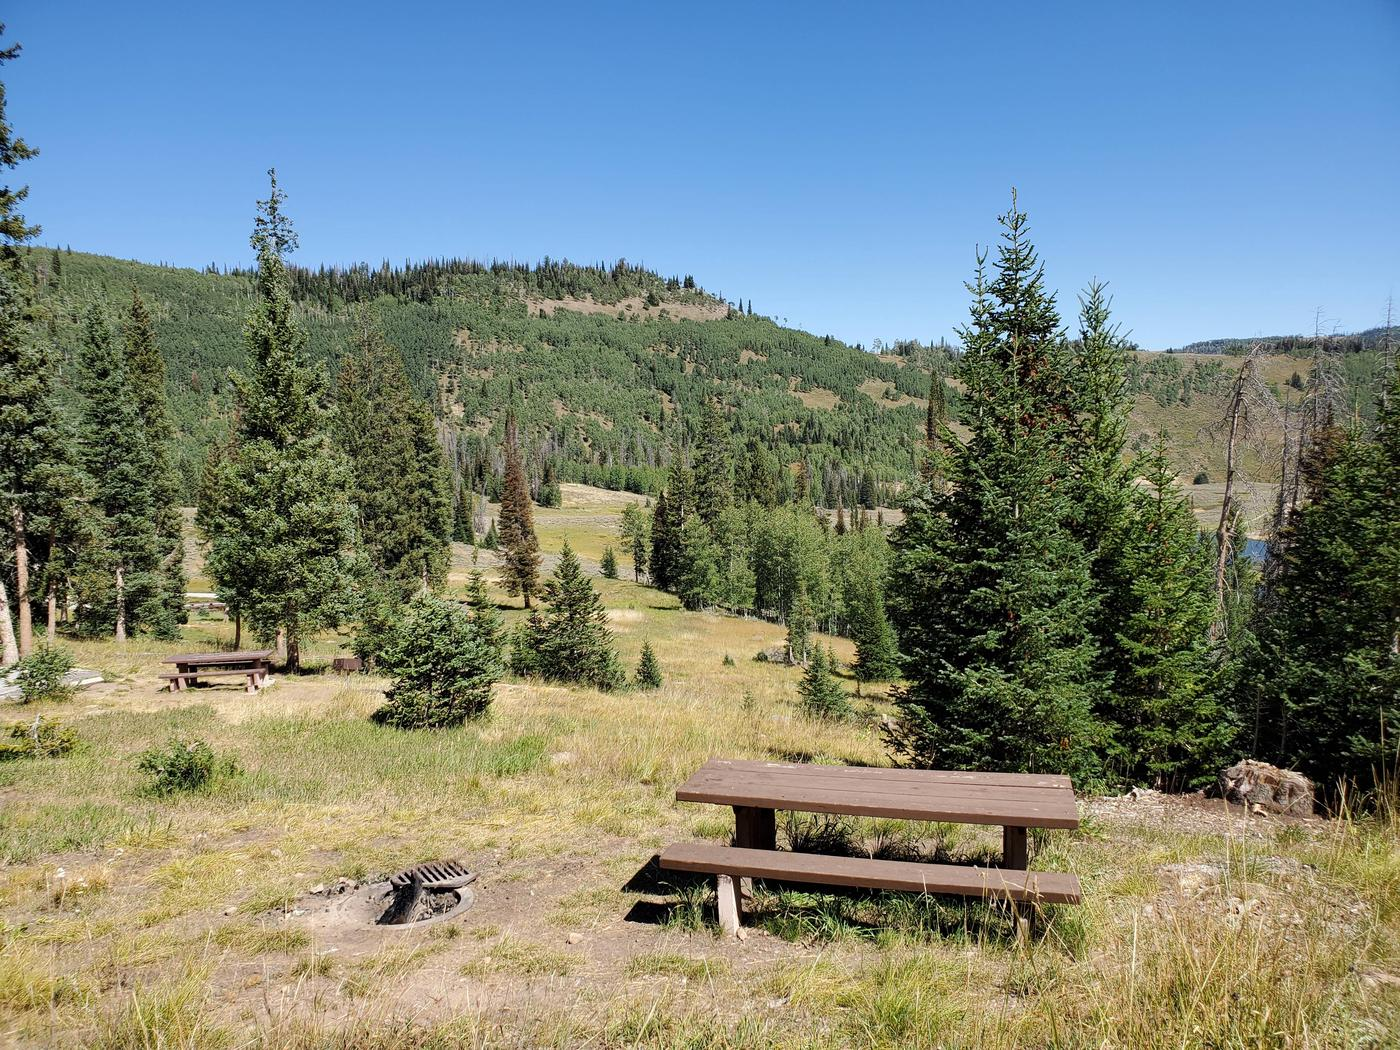 Flat Canyon Campground Site #7bFlat Canyon Campground Site #7